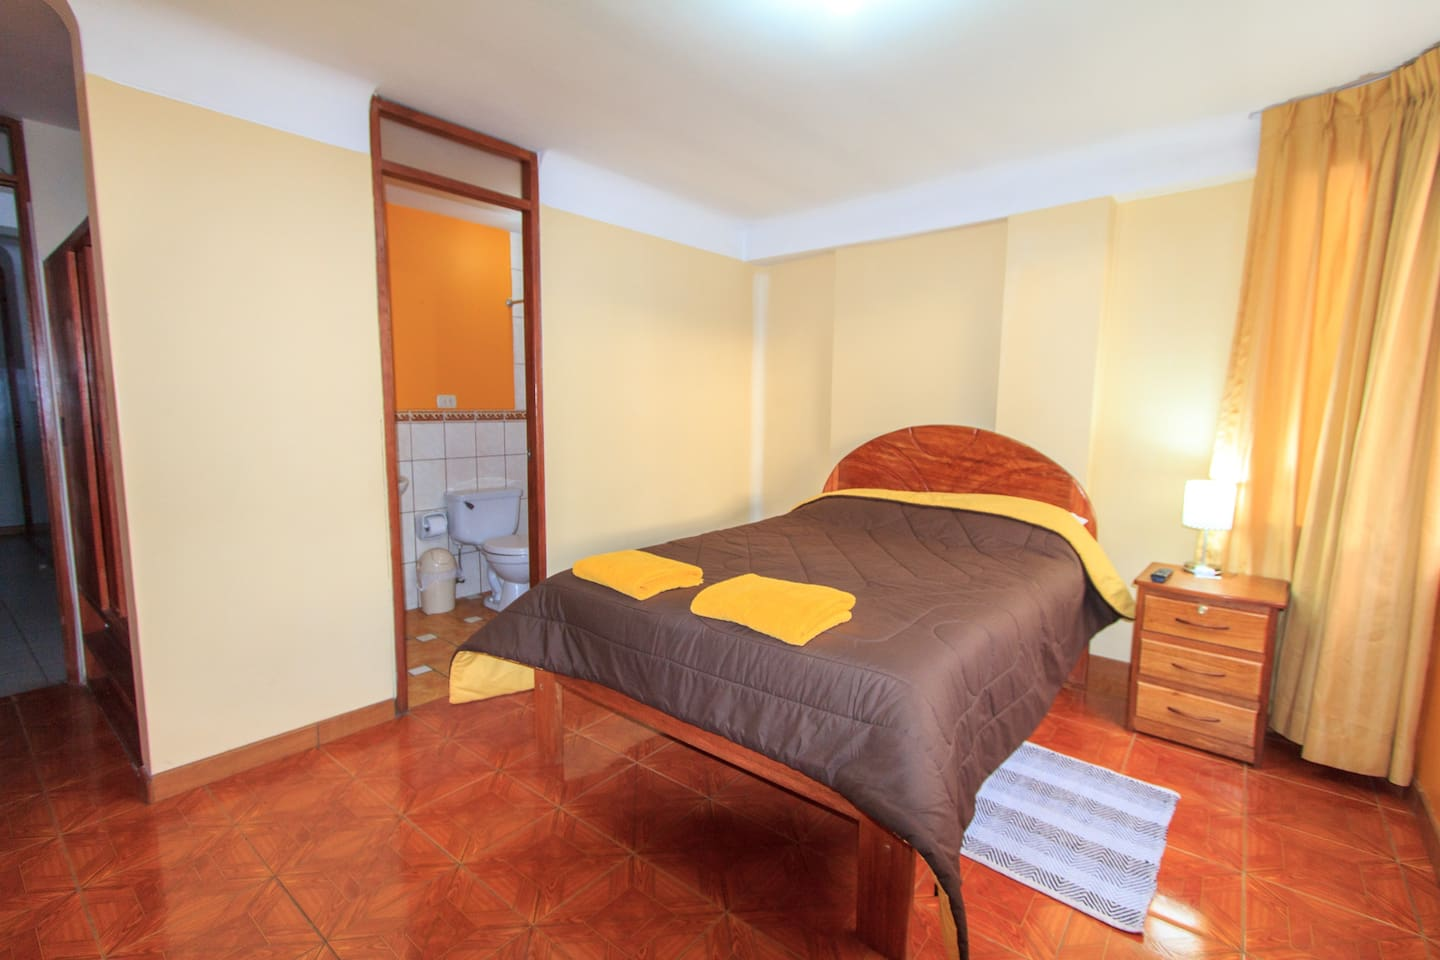 Comfortable double bed, closet and private bathroom